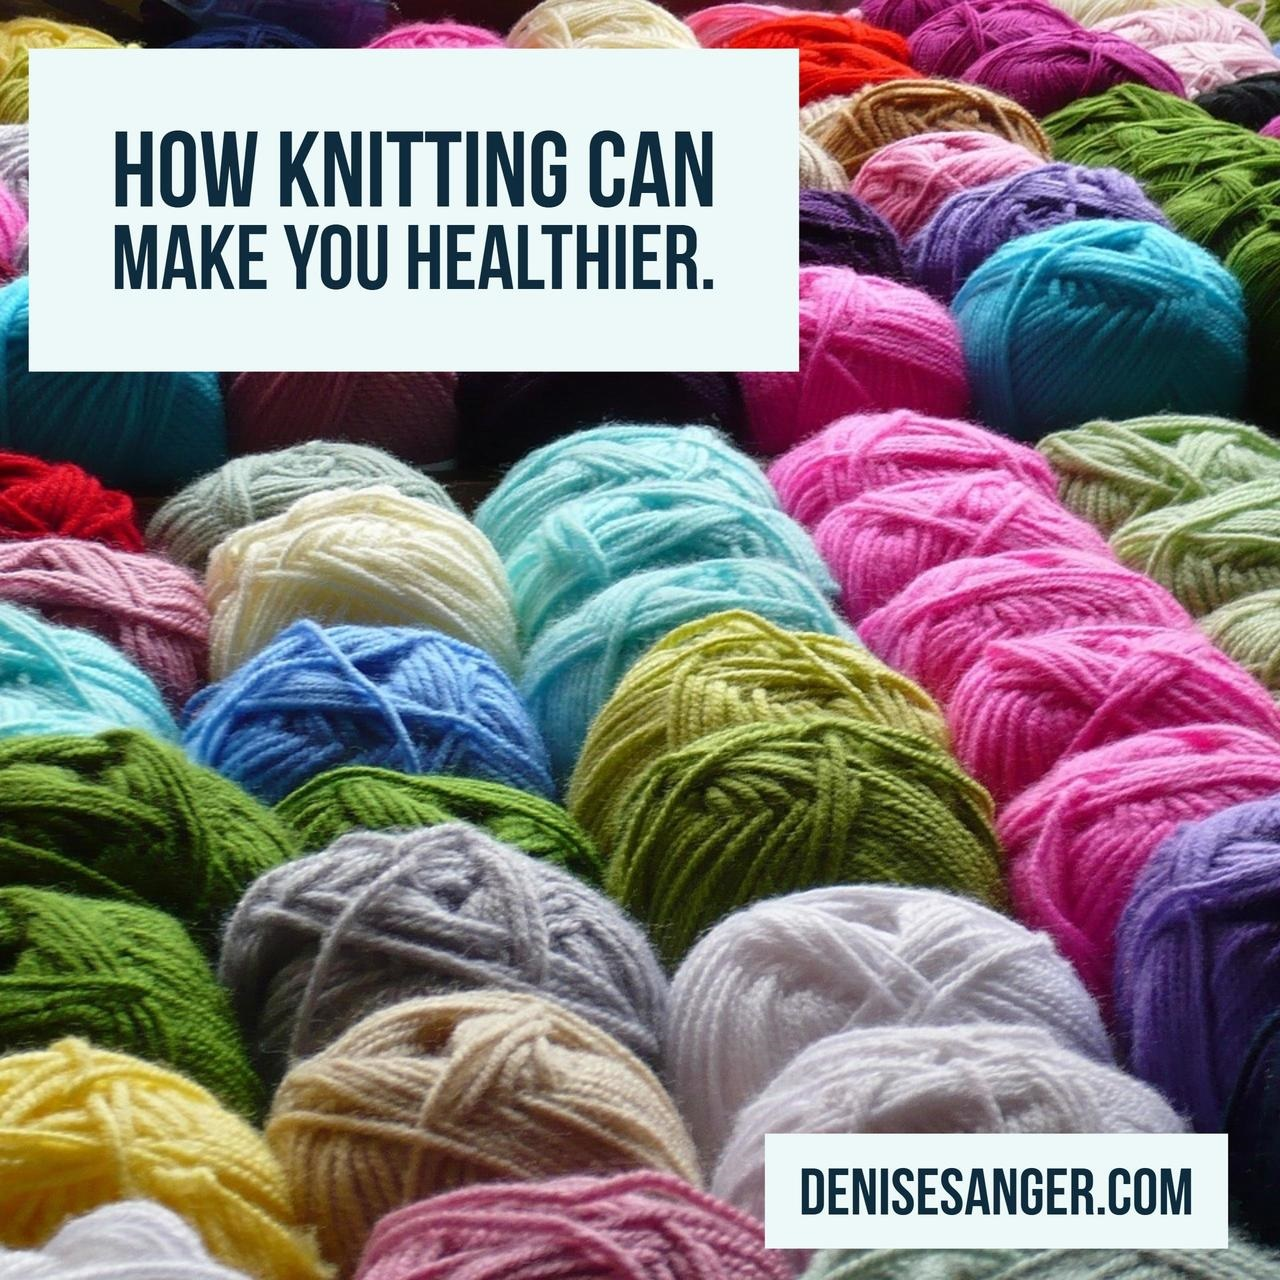 Can Knitting Make You Healthier?